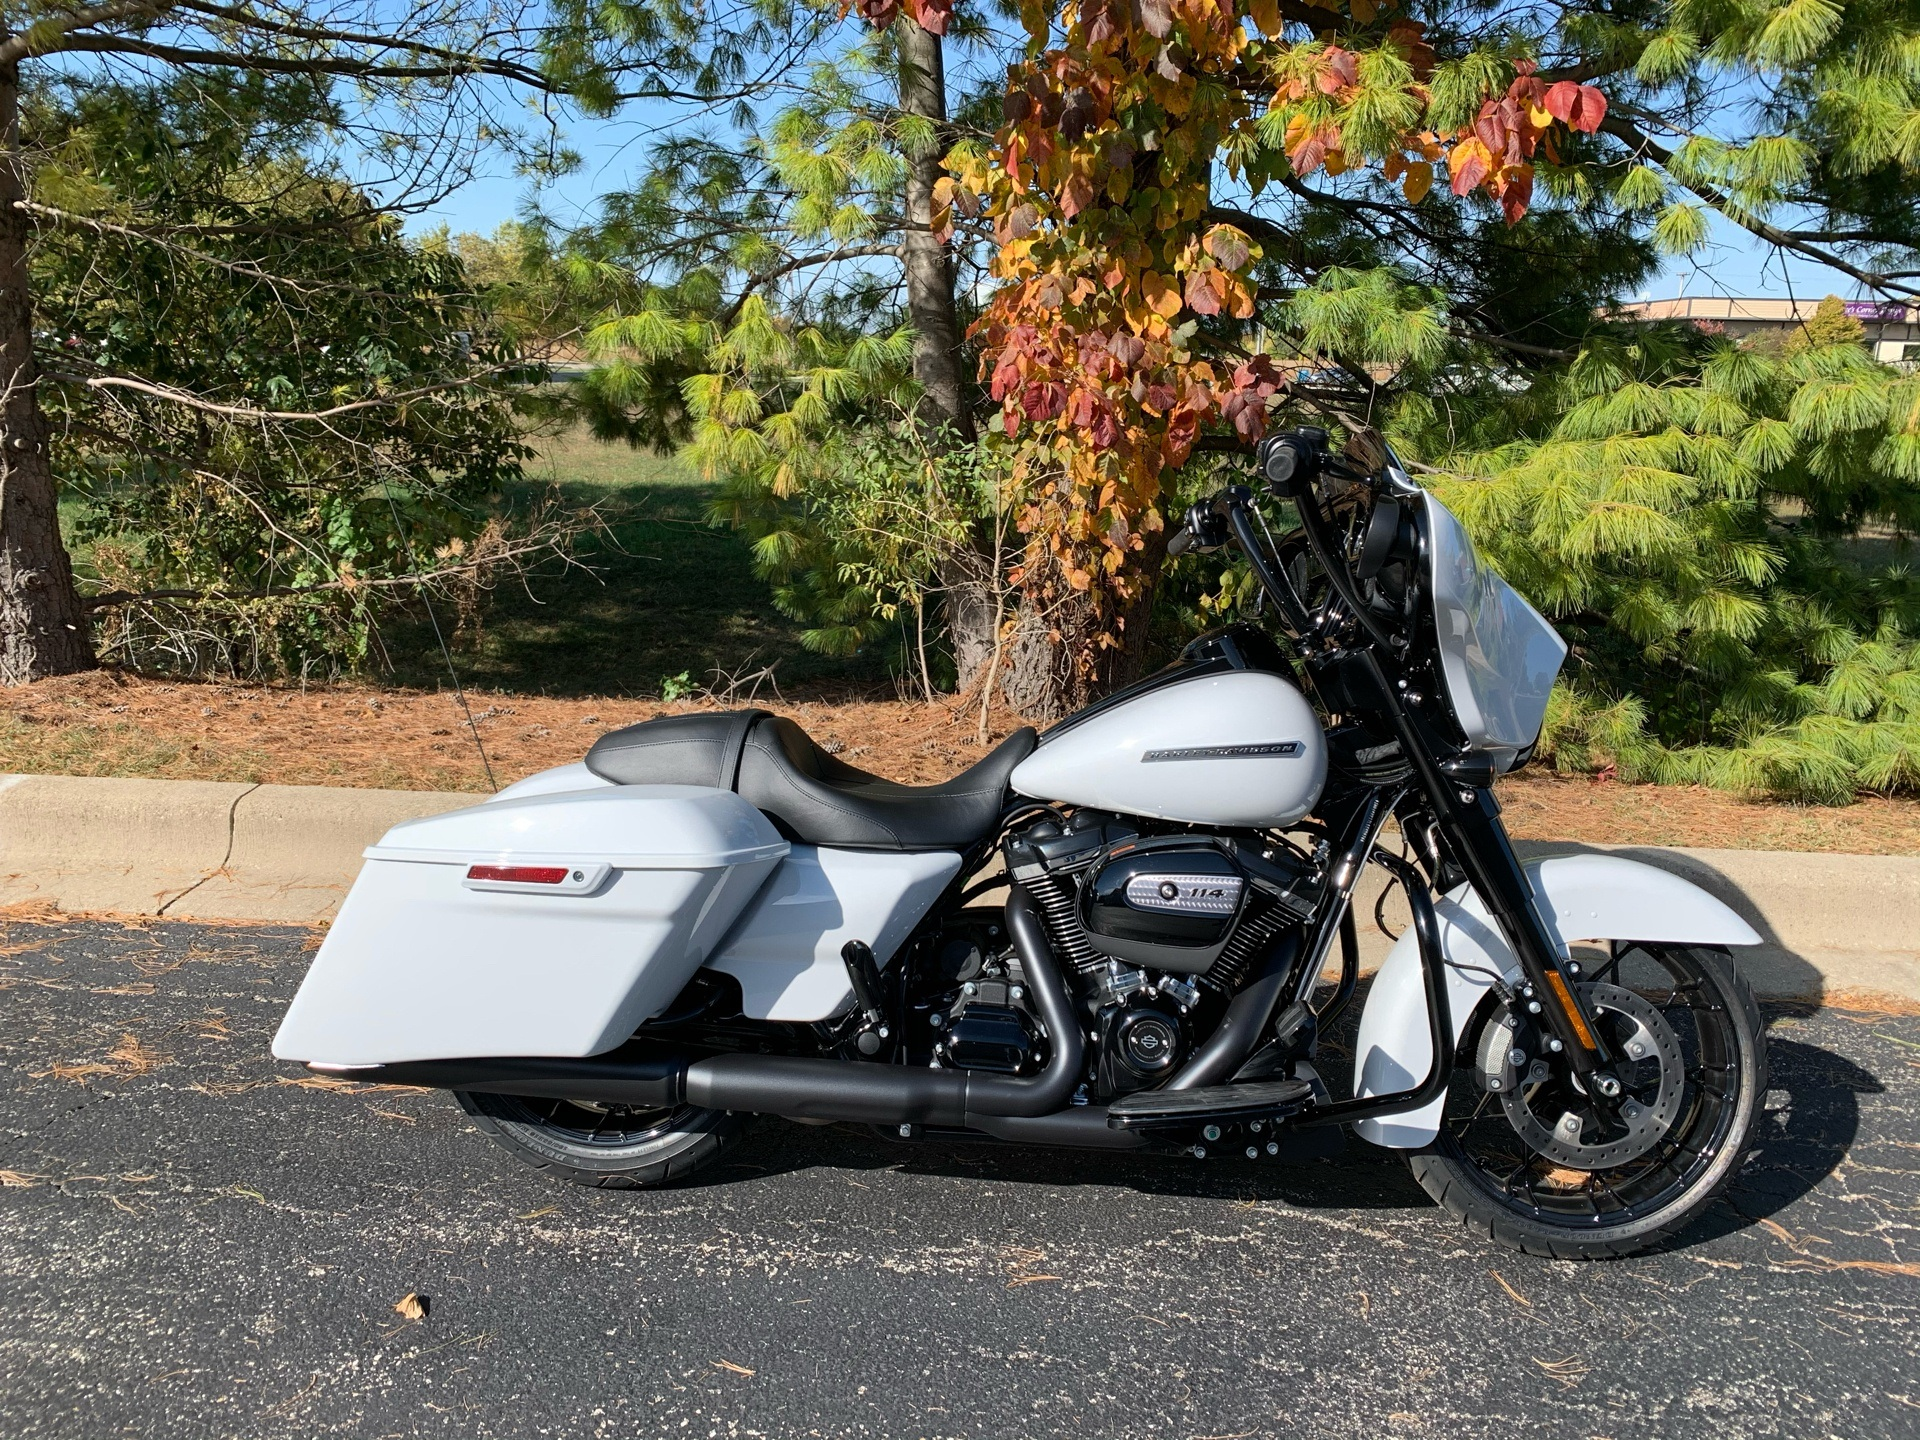 2020 Harley-Davidson Street Glide Special in Forsyth, Illinois - Photo 1